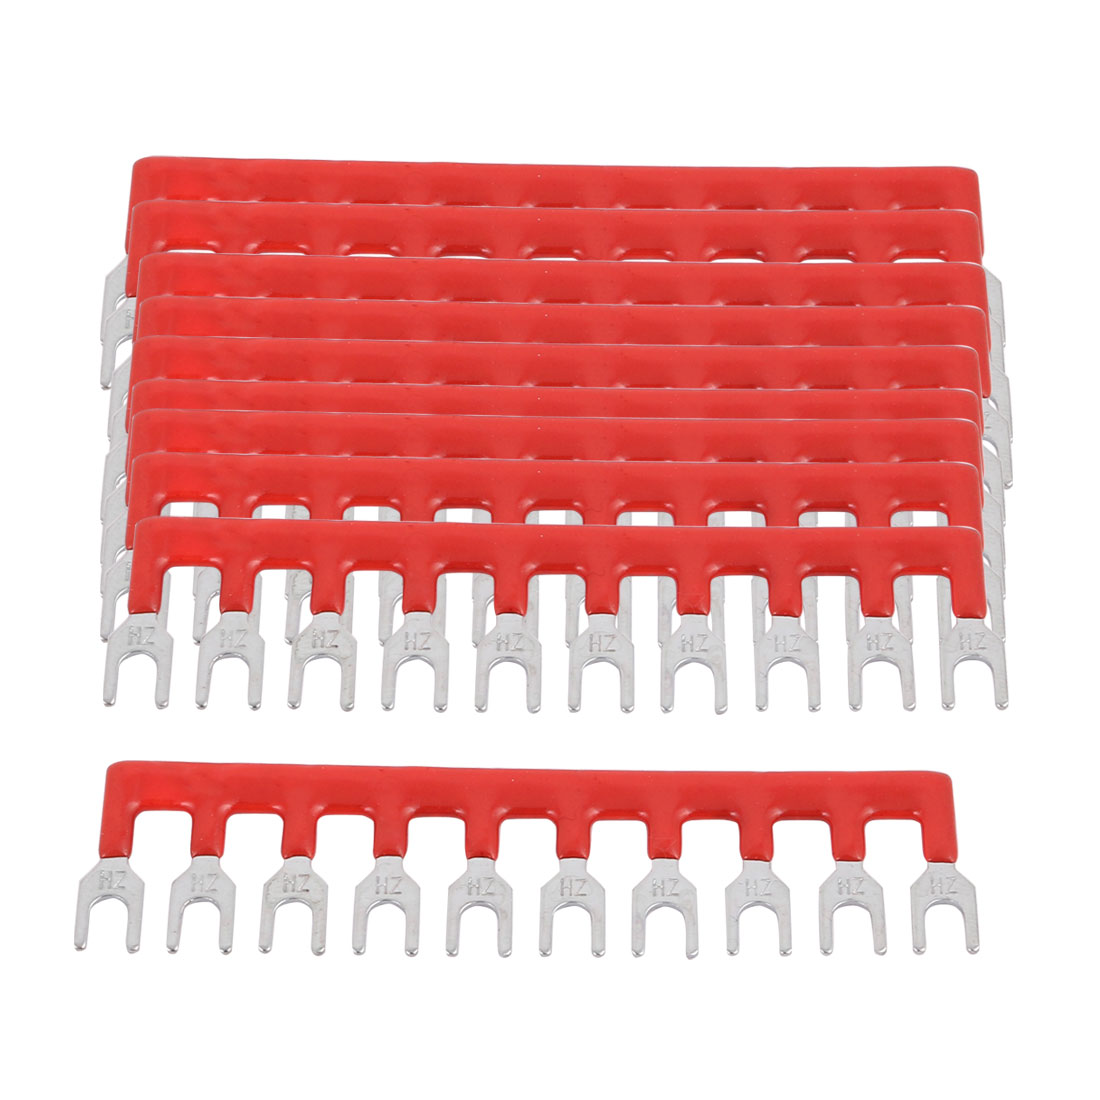 10PCS 600V 15A 5mm Pitch 10 Position PCB Terminal Block Strip Barrier Red